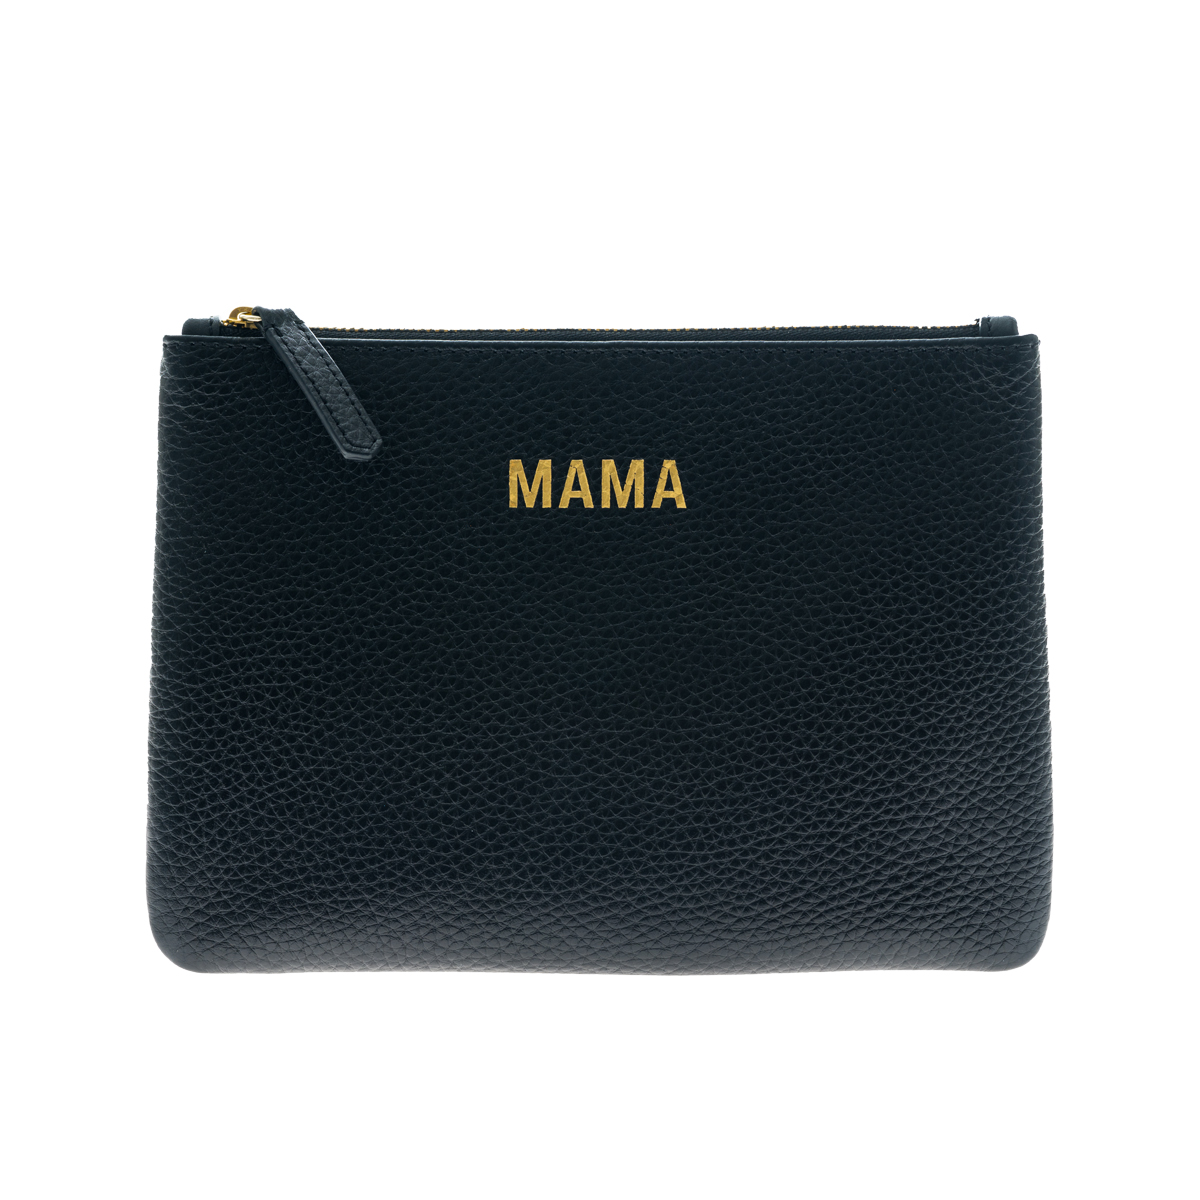 Jem + Bea Mama Leather Clutch